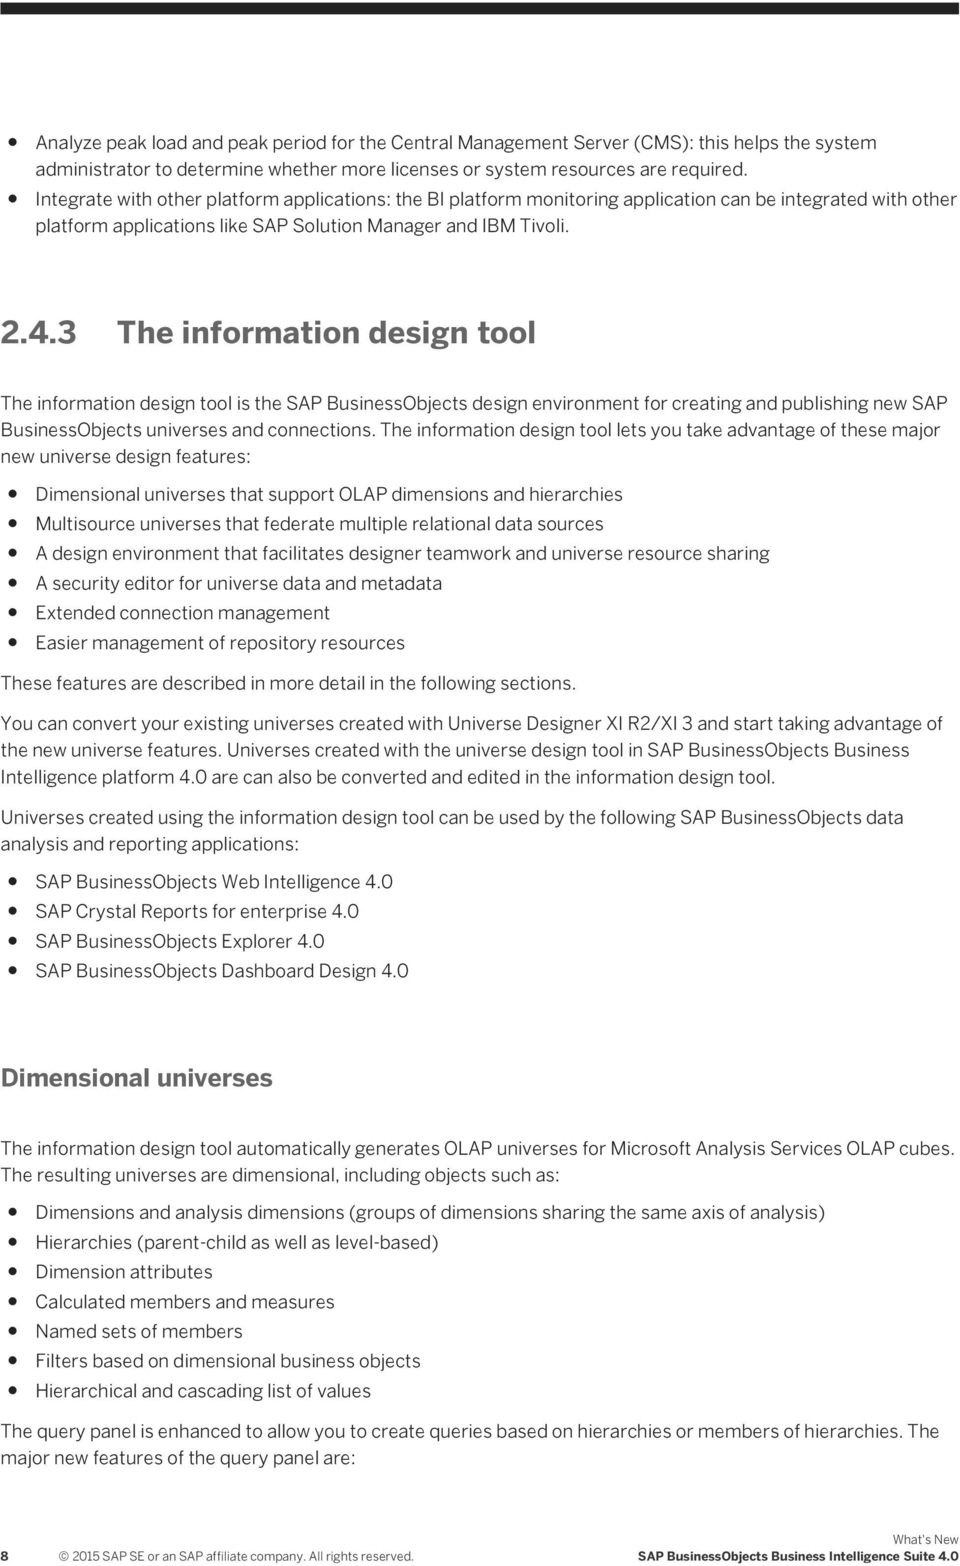 3 The information design tool The information design tool is the SAP BusinessObjects design environment for creating and publishing new SAP BusinessObjects universes and connections.